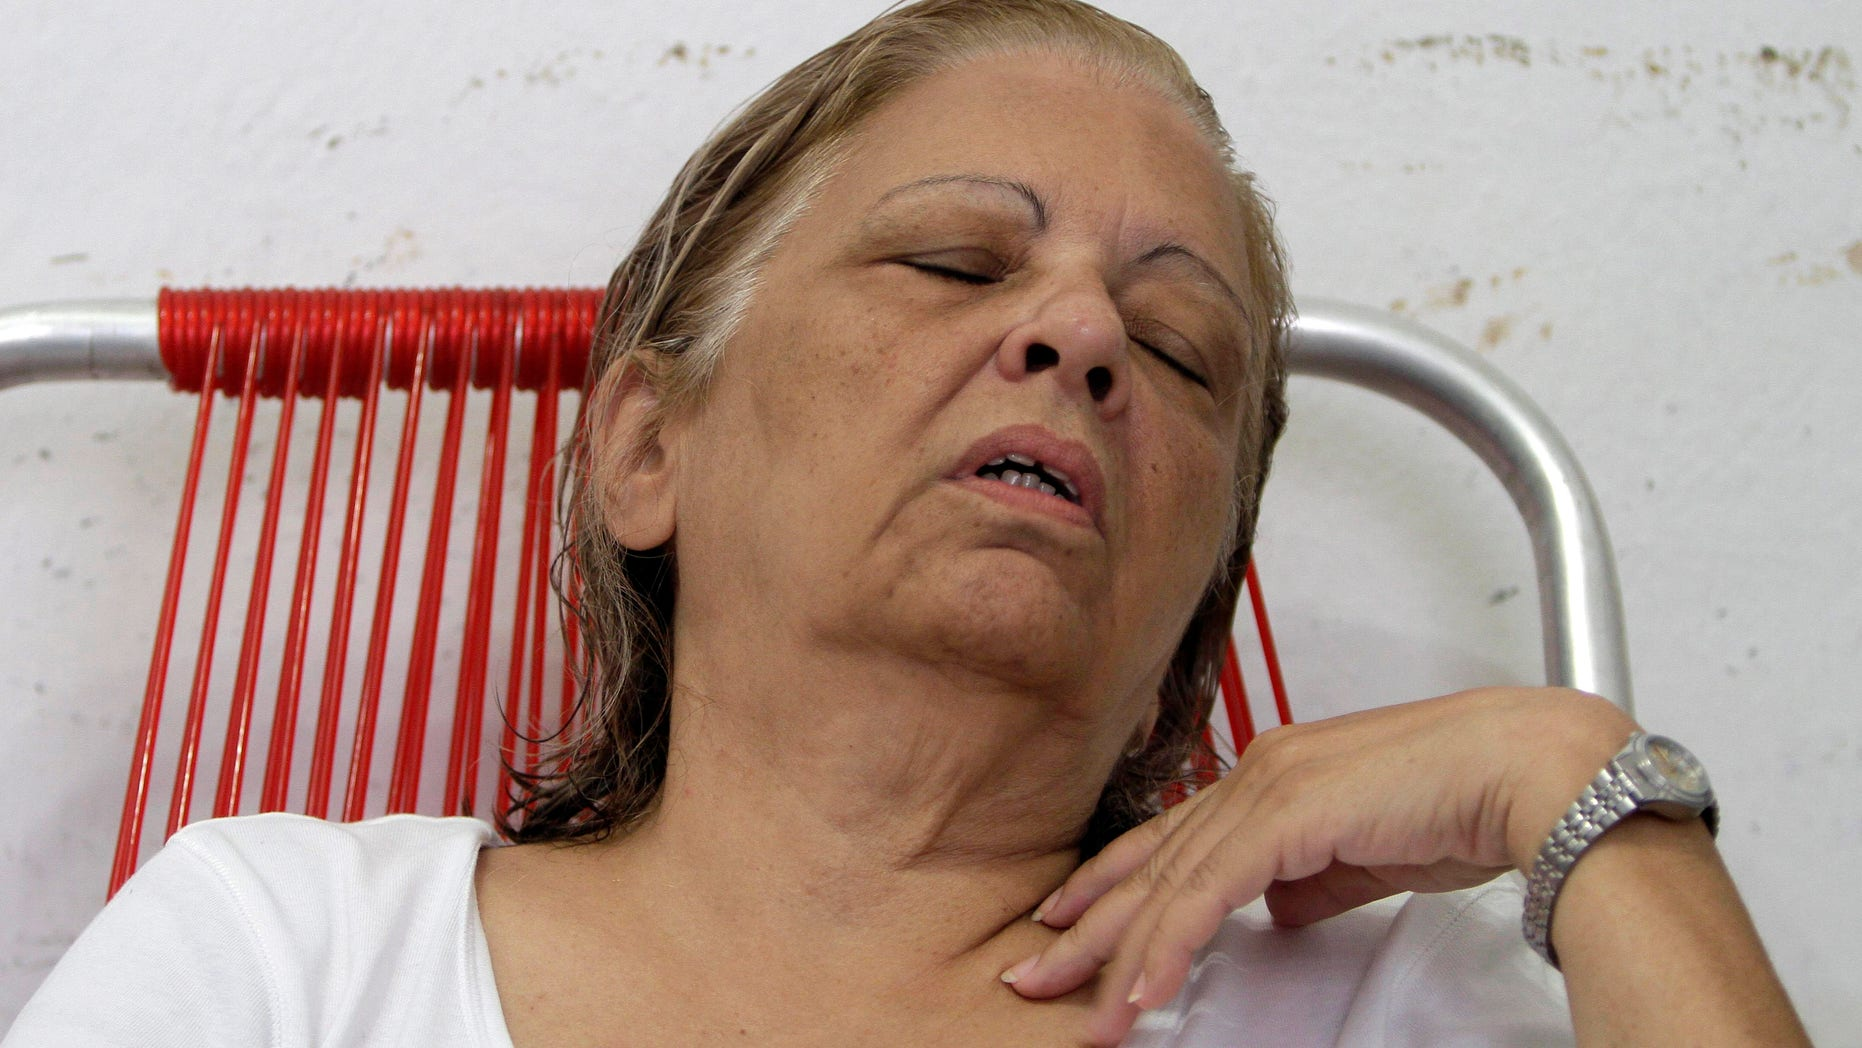 Cuba dissident Martha Beatriz Roque rests after giving an interview in Havana, Cuba, Tuesday, Sept. 11, 2012. The prominent dissident has declared a hunger strike and says 12 other opposition members are joining her.